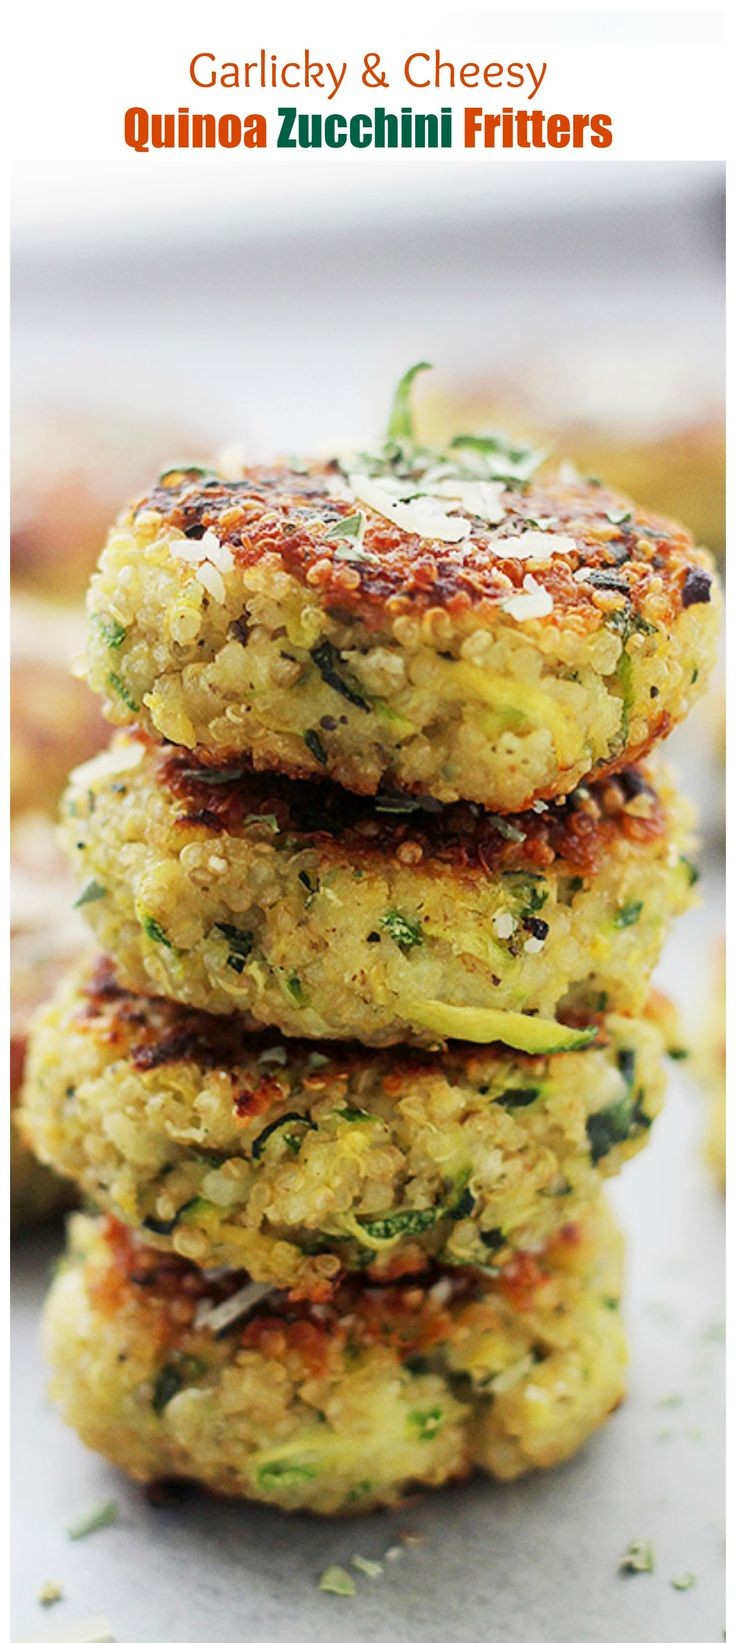 Garlicky & Cheese Quinoa Zucchini Fritters - 30+ Recipes for your Garden Zucchini